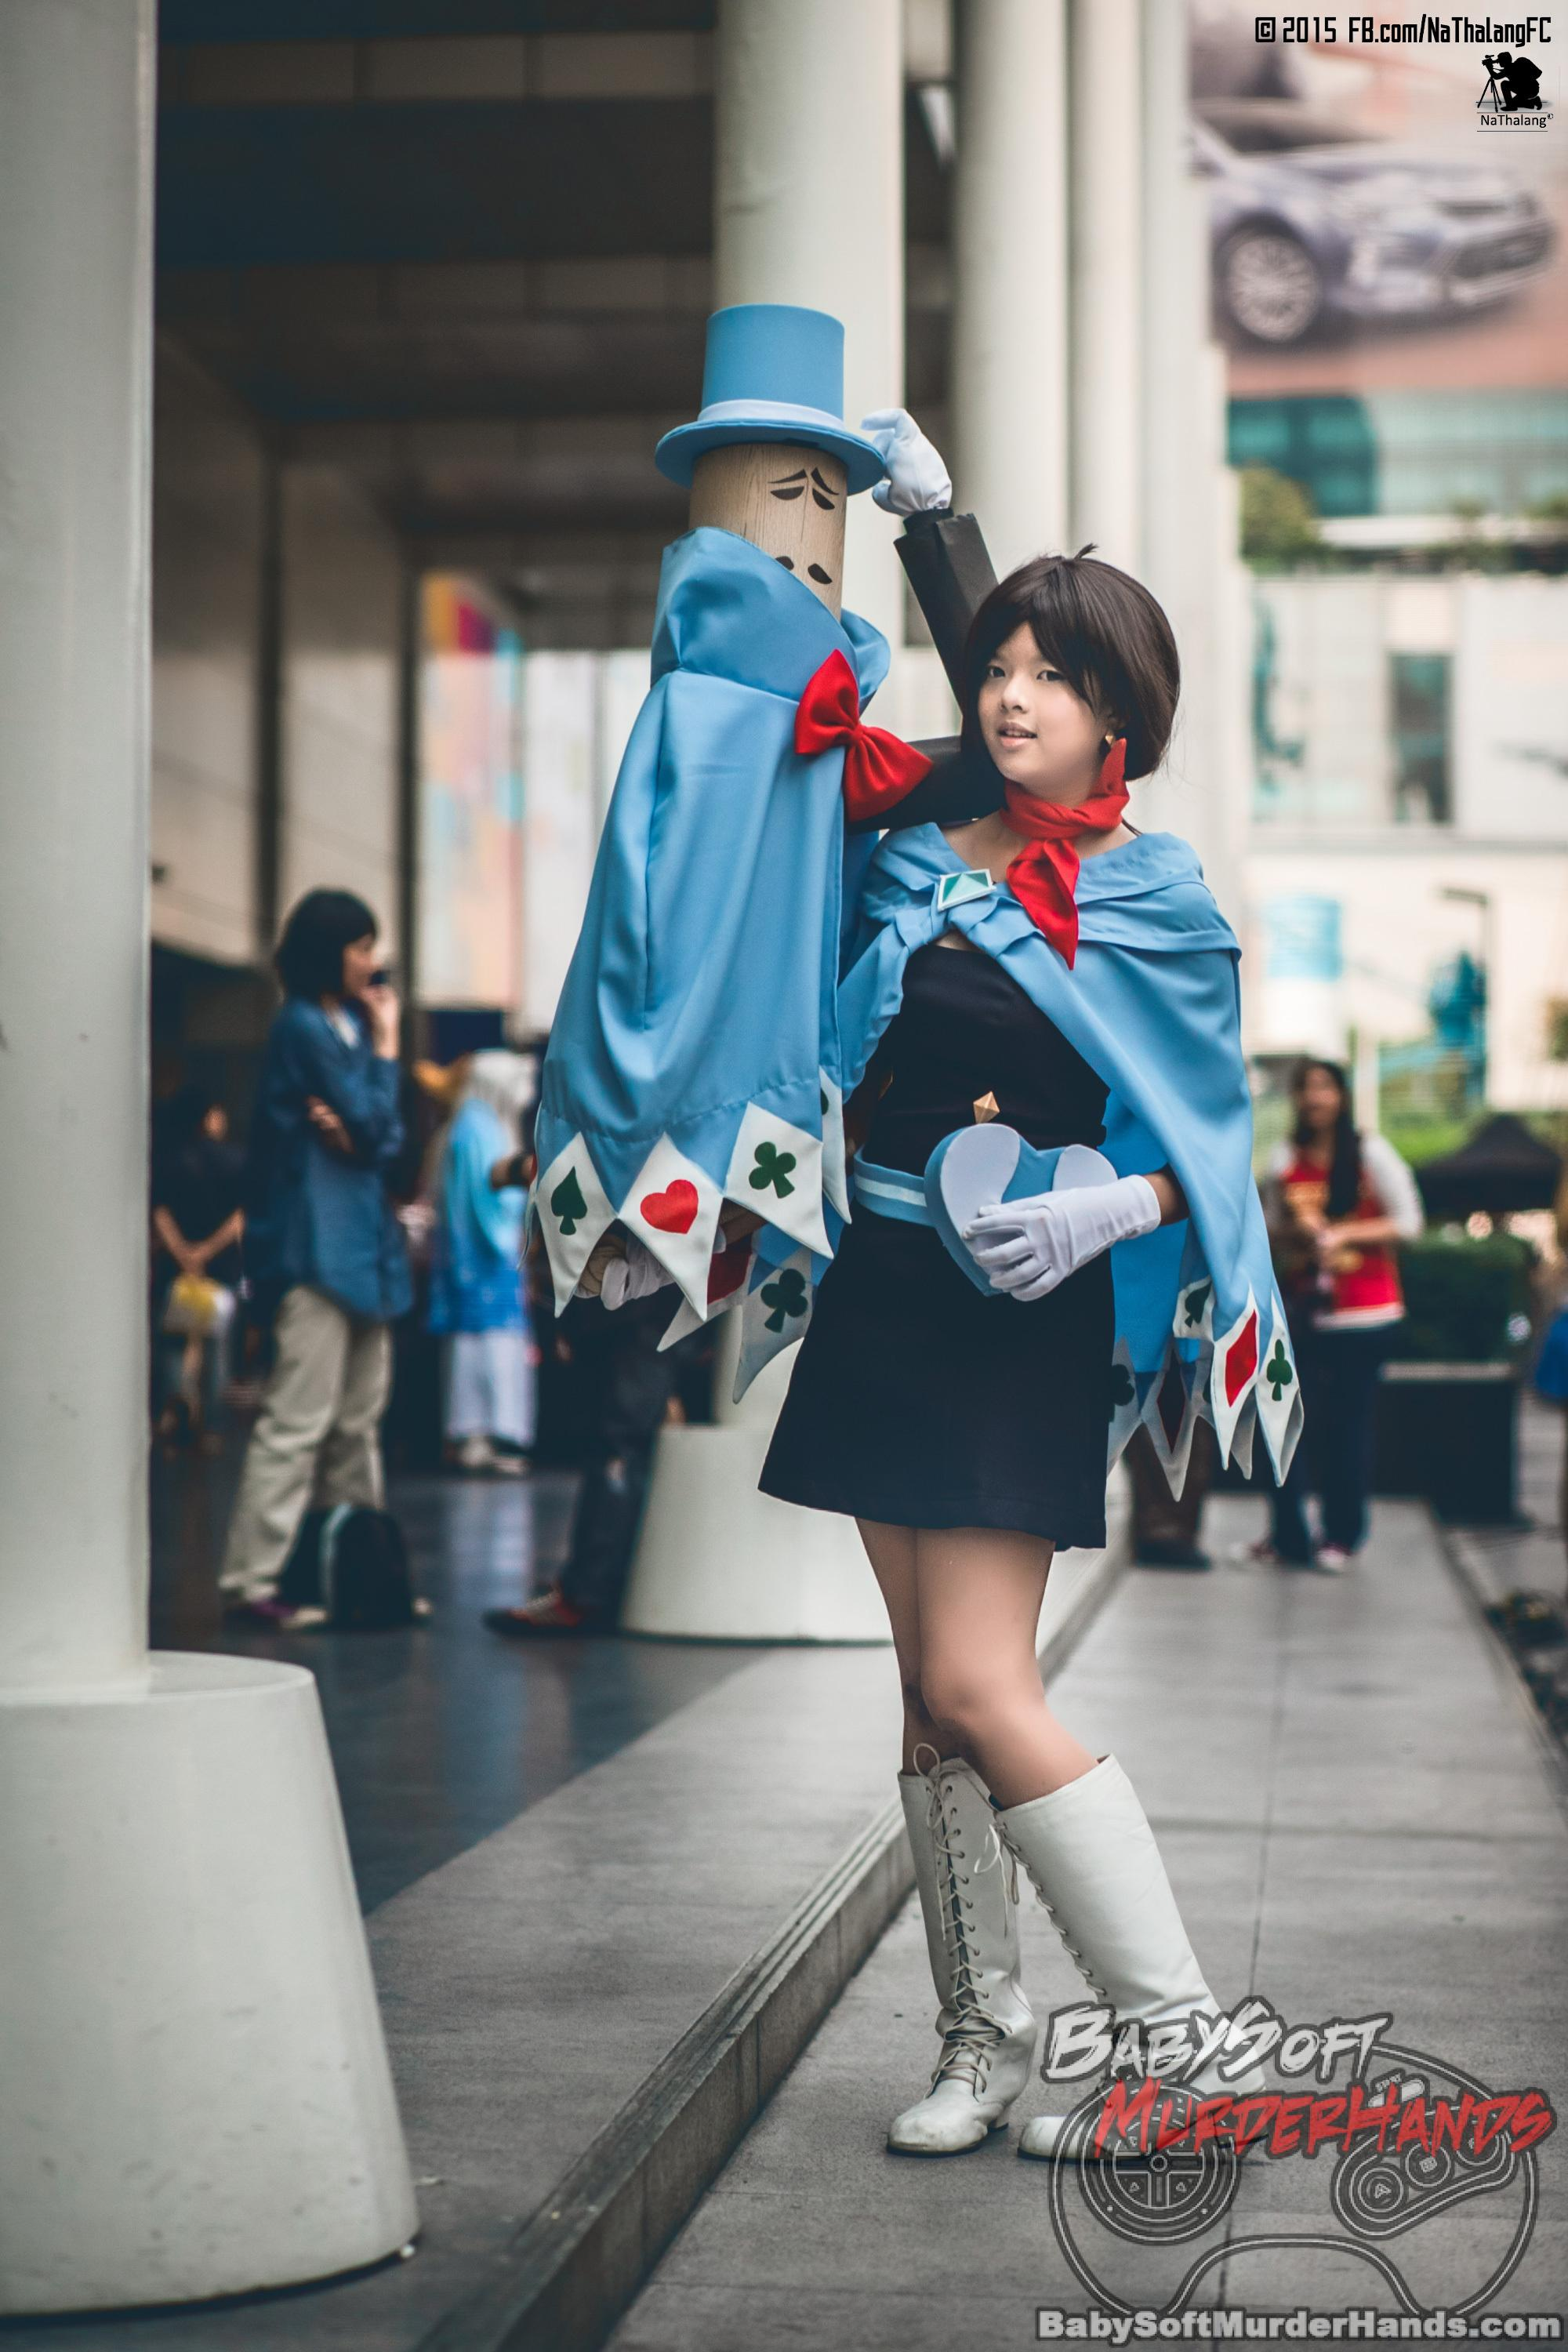 Trucy Wright from Apollo Justice: Ace Attorney Cosplay by Rolene Farlast